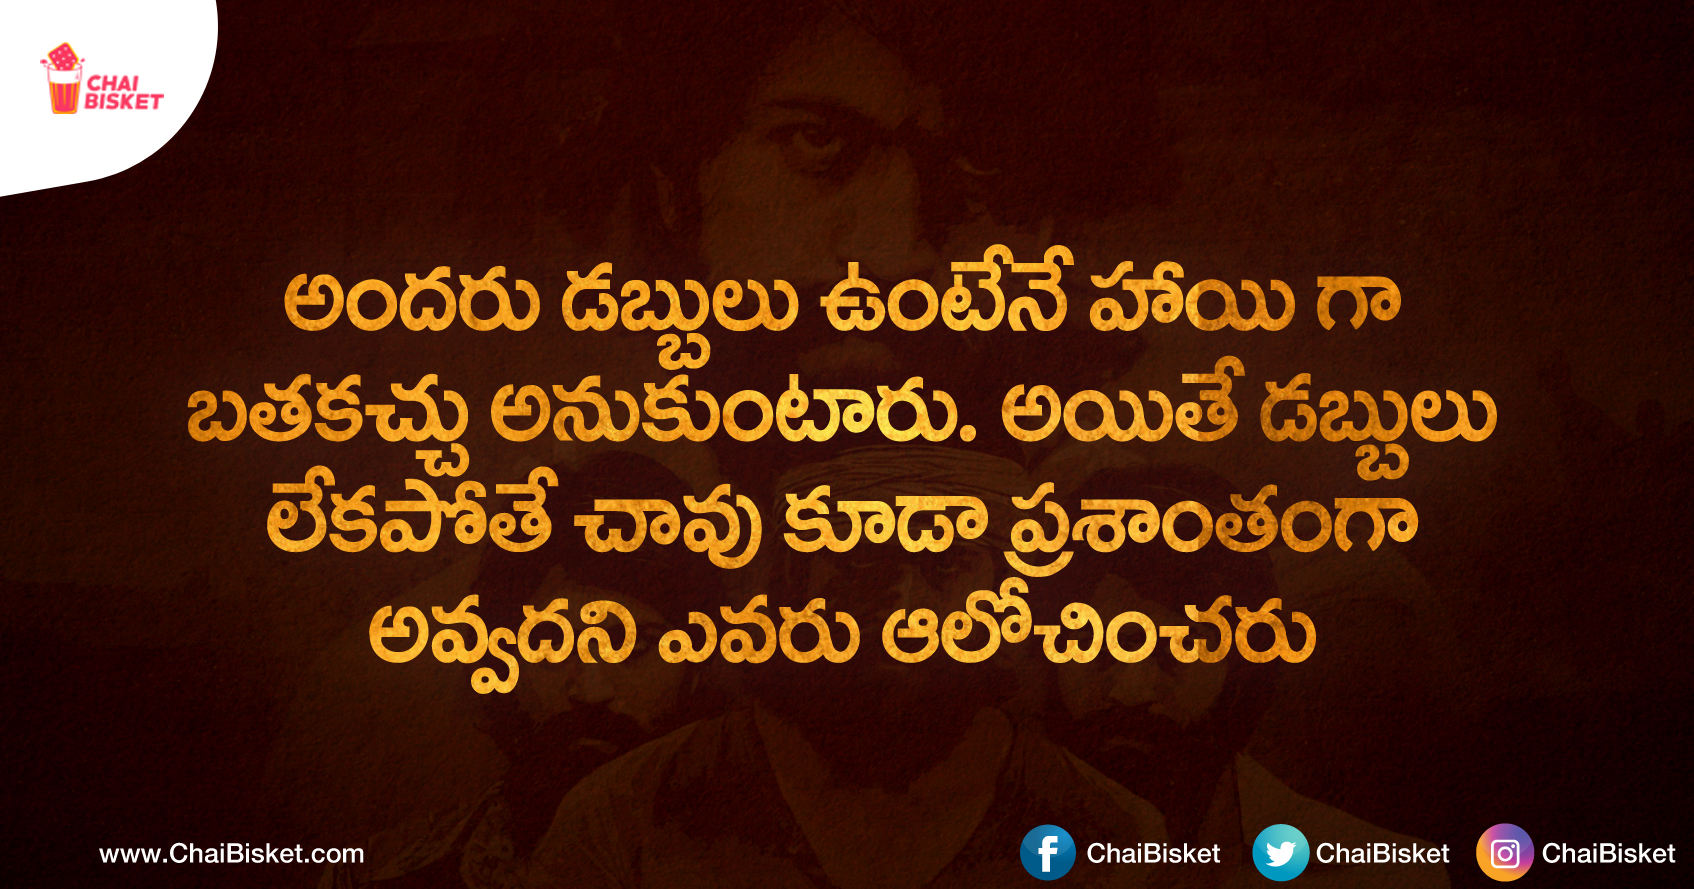 24 Oora Maass Dialogues From KGF, That Made Us Whistle Madly